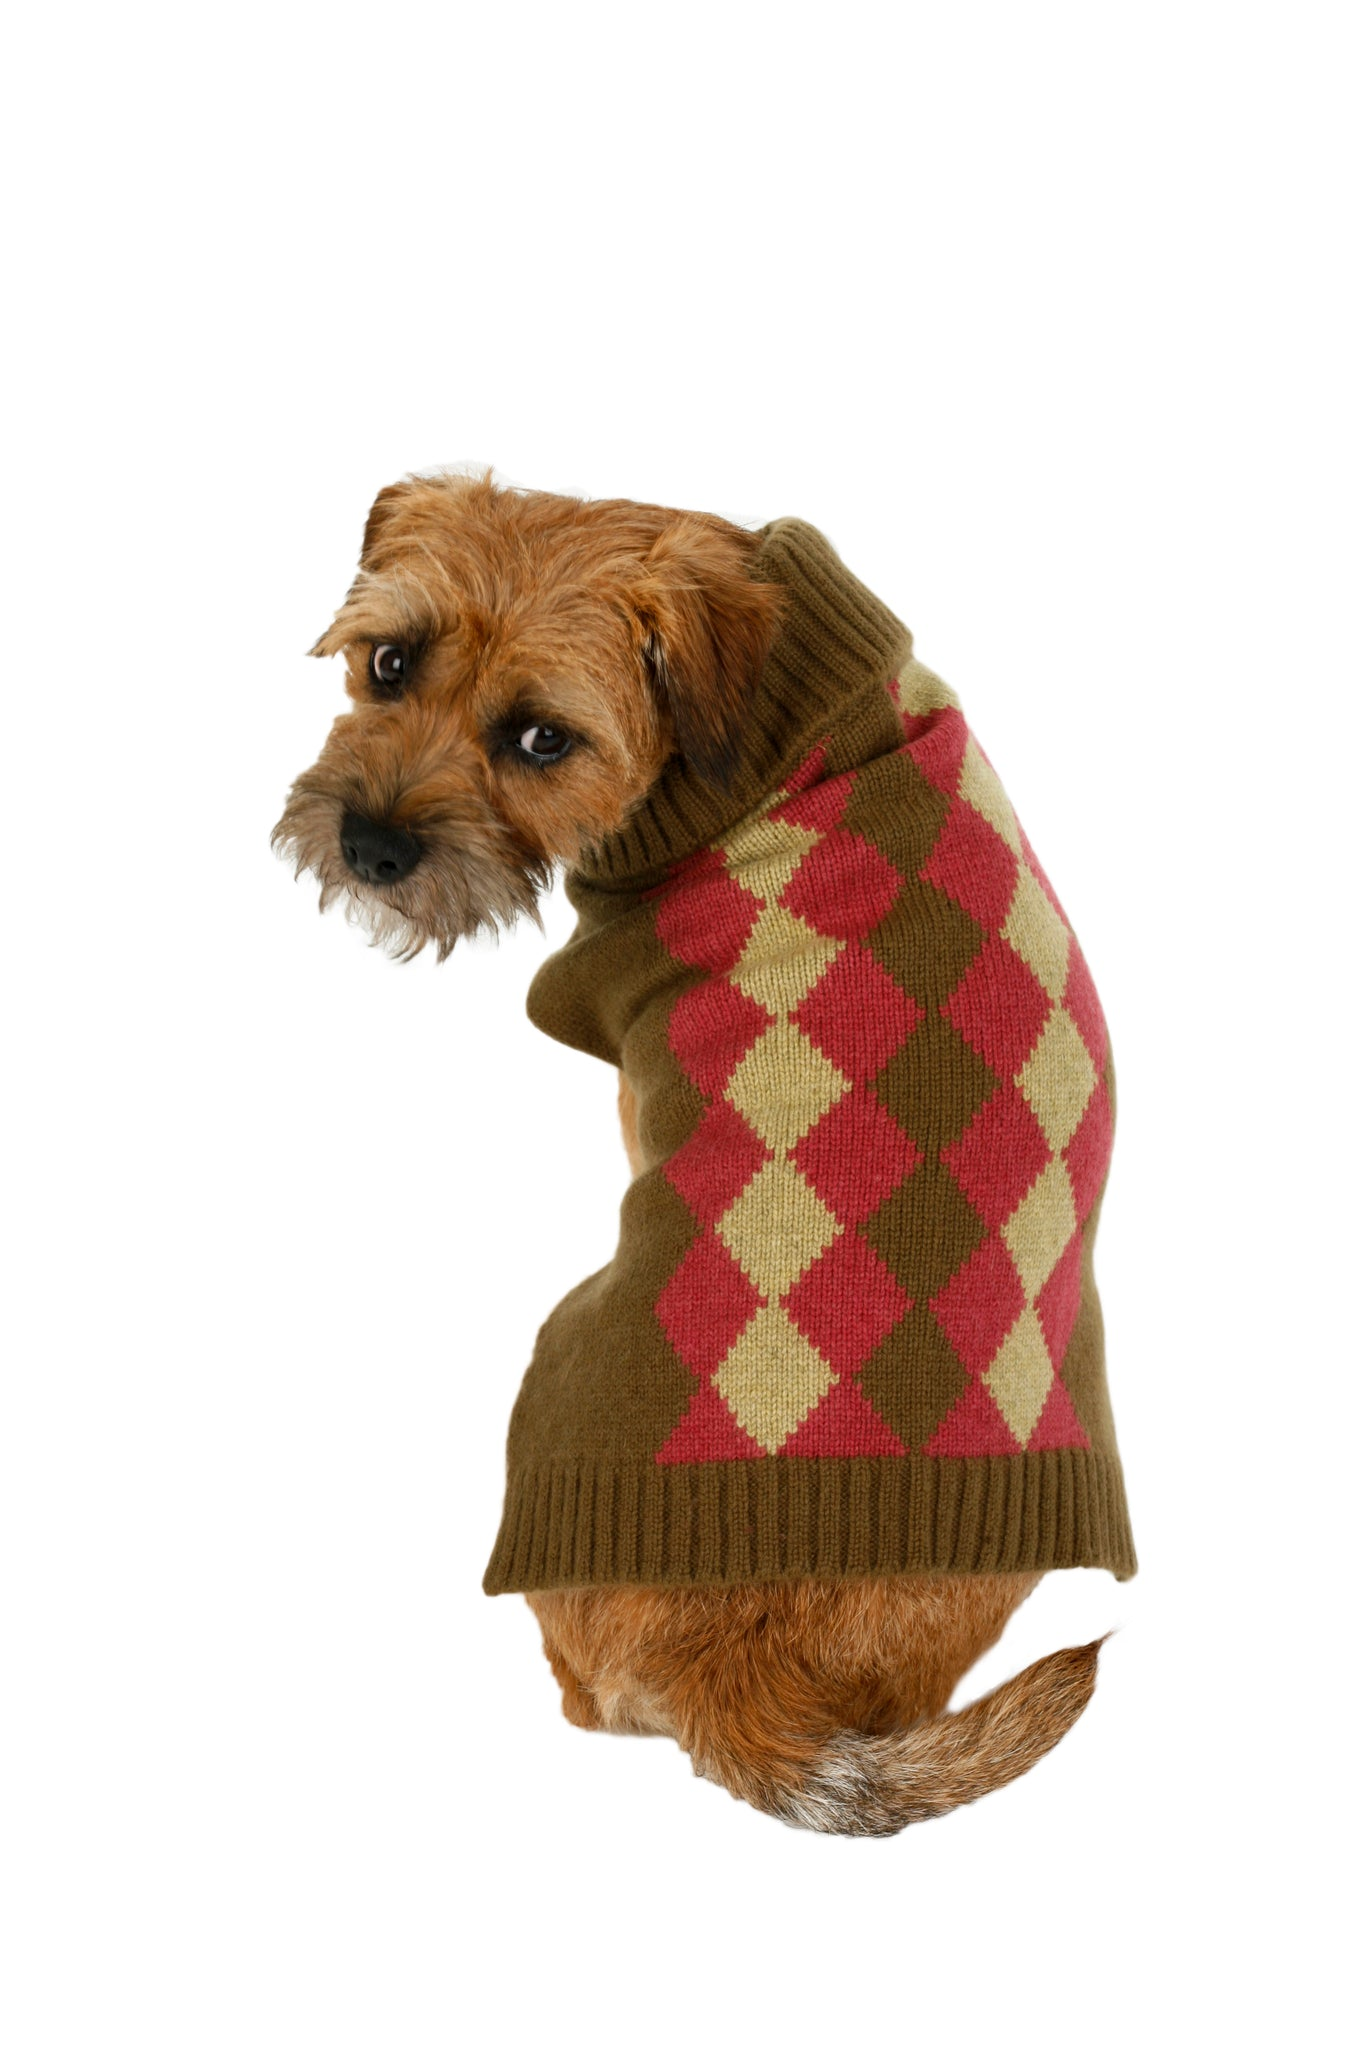 Cashmere Dog Sweater - SALE - Burgundy & Gray Argyle